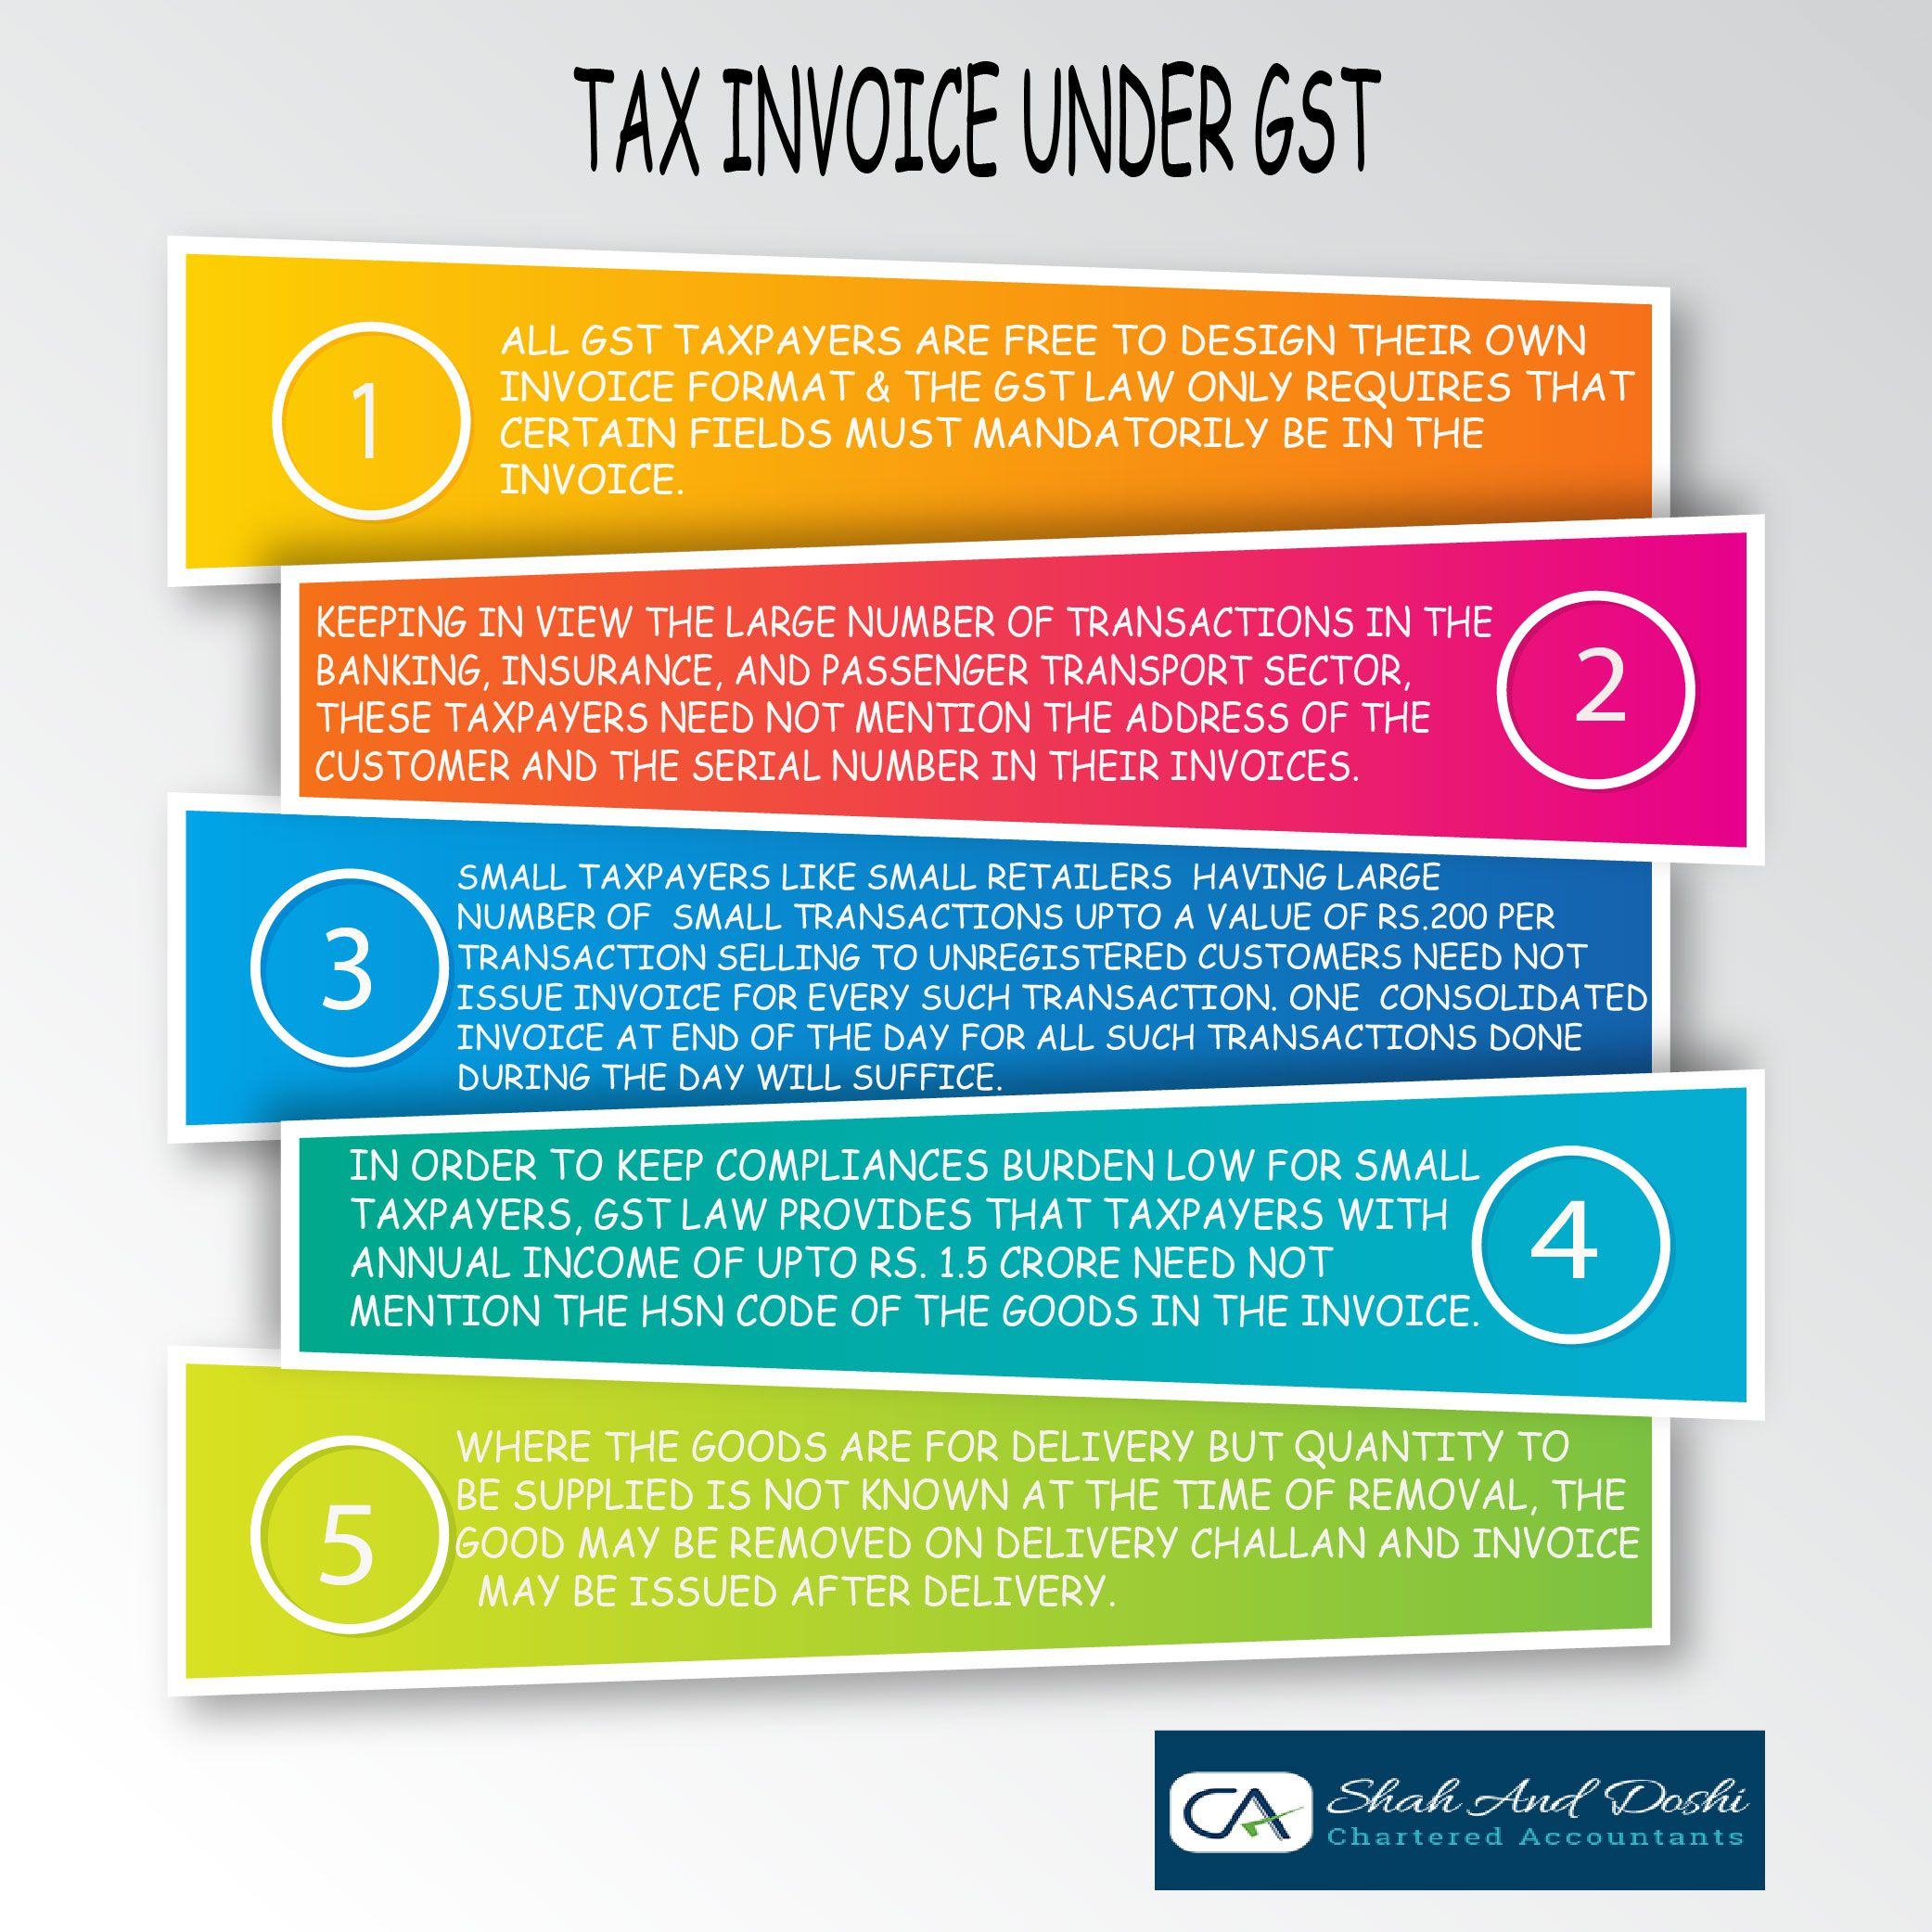 An Invoice Is Required For Every Form Of Supply Such As Transfer Barter Exchange License Rental Lease Or Disposal Gst Requir Invoicing Invoice Format Tax